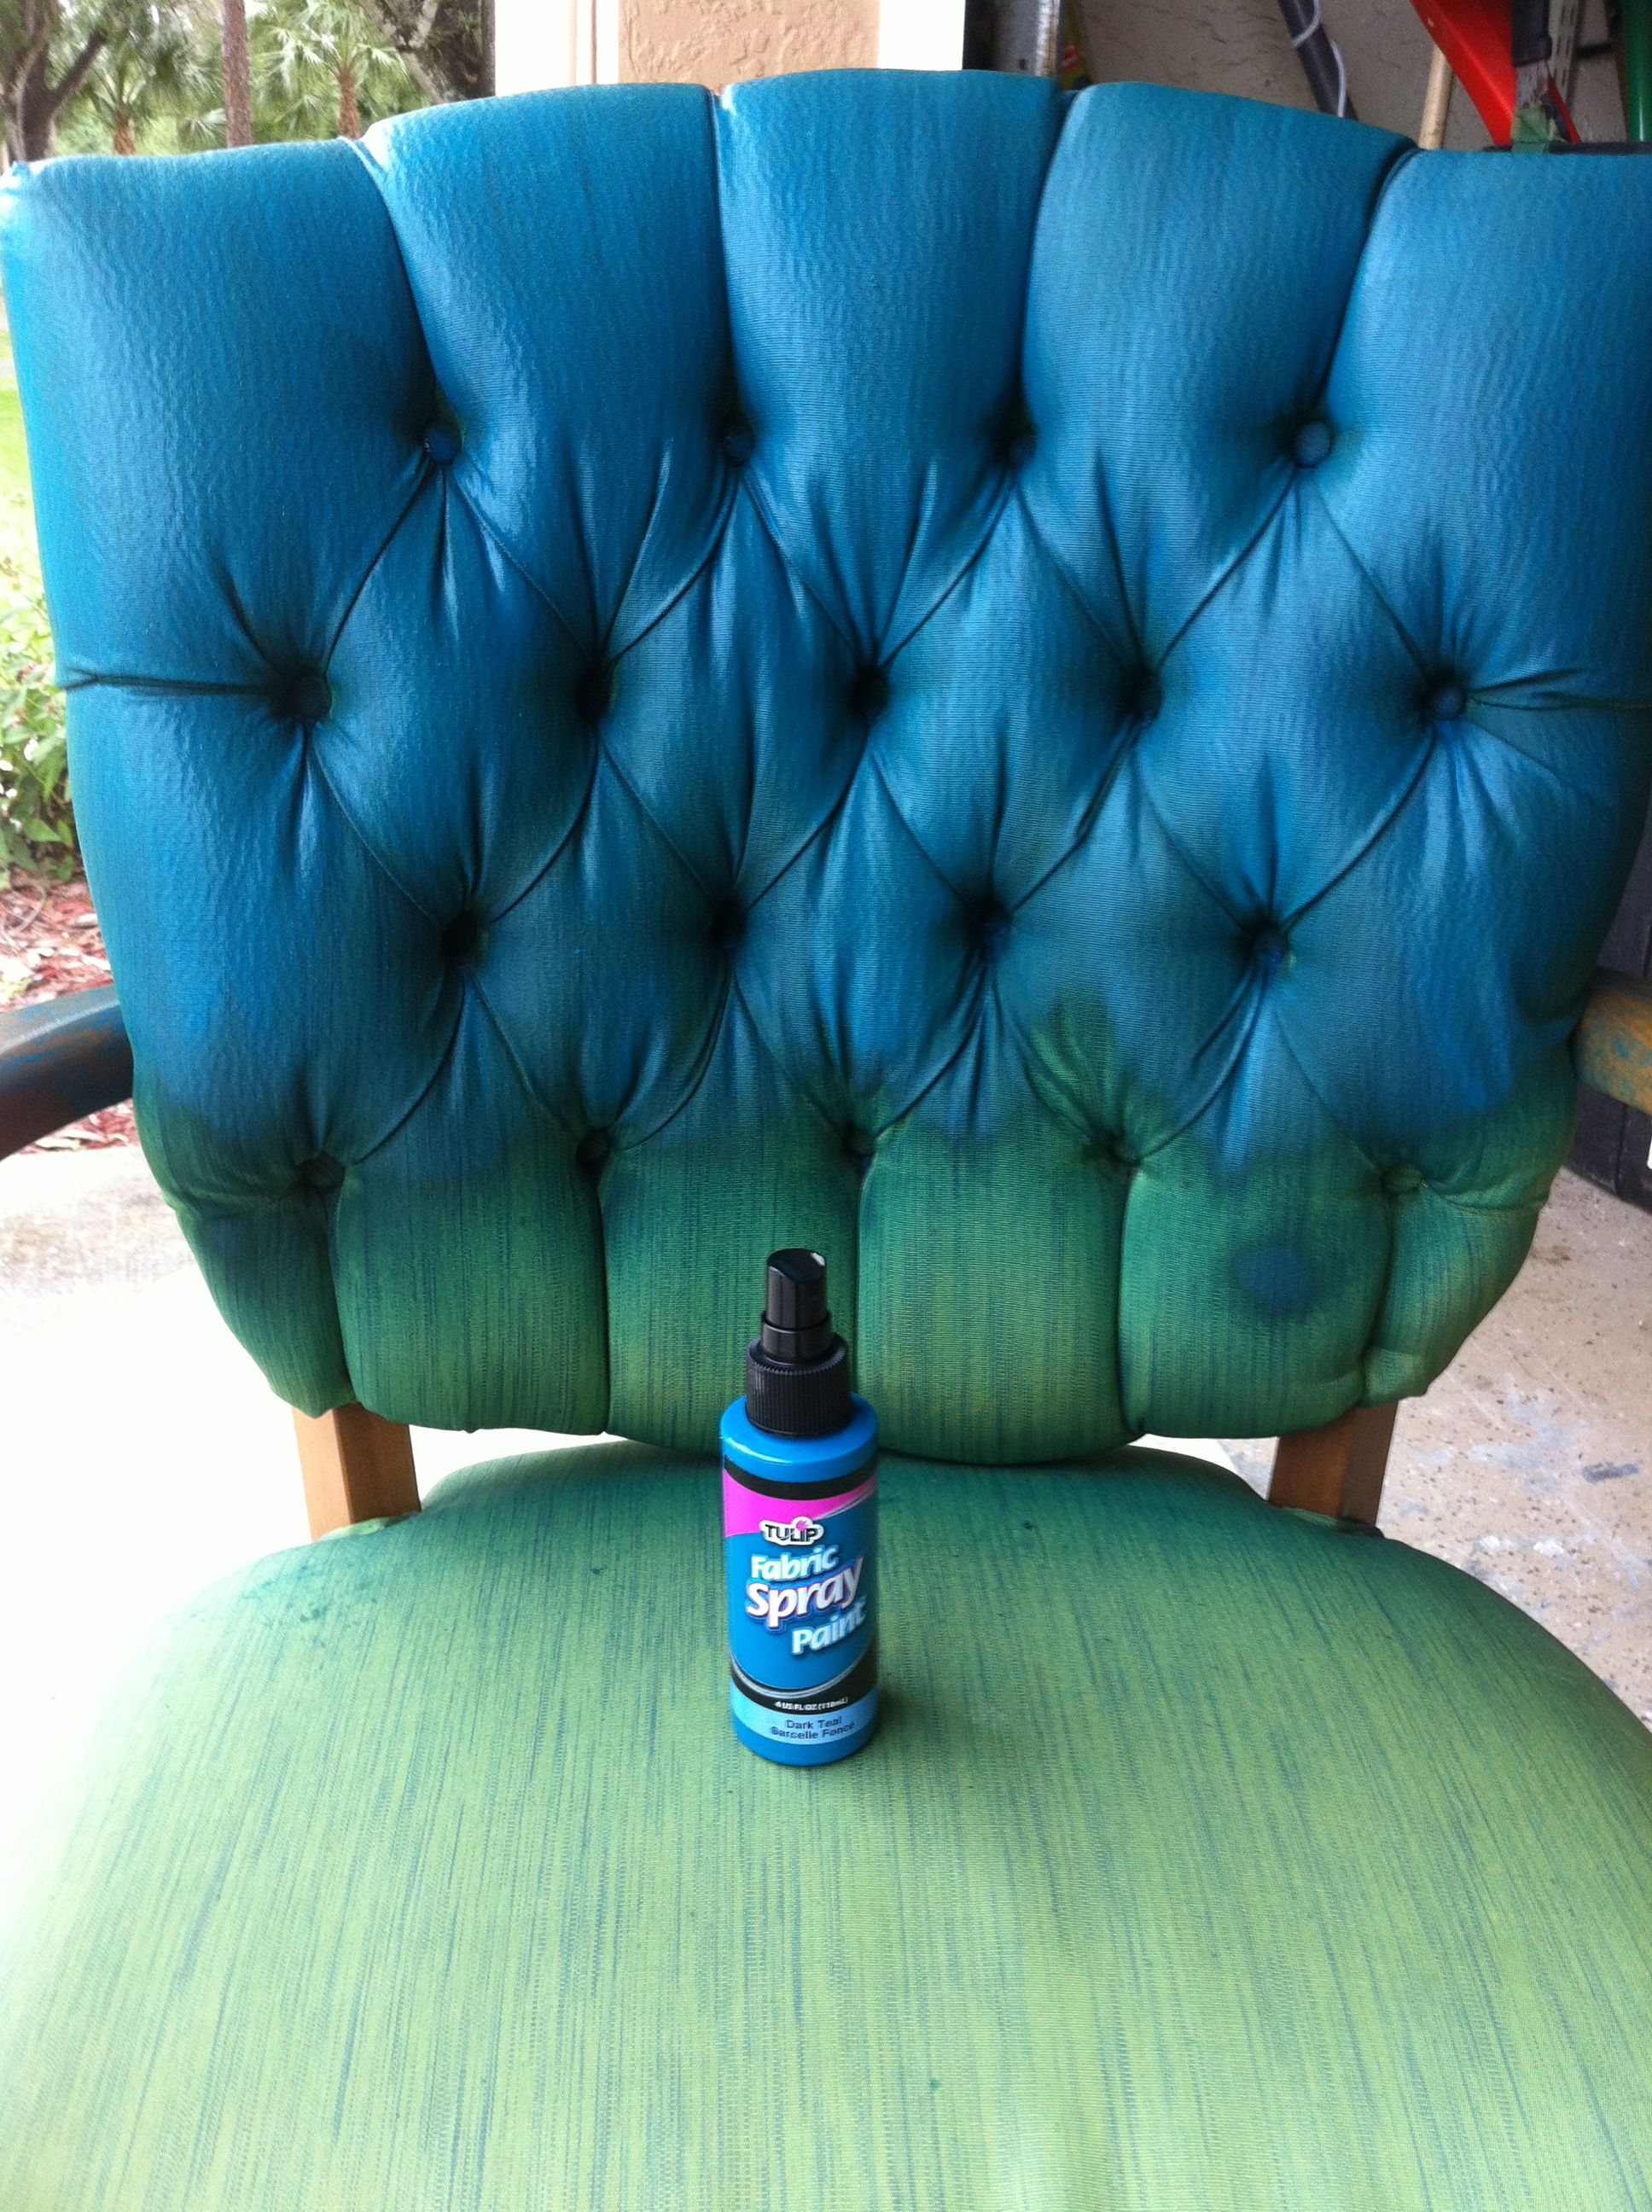 Upholstery Spray Paint Before And After Photos Painting Upholstered Furniture Paint Upholstery Furniture Upholstery